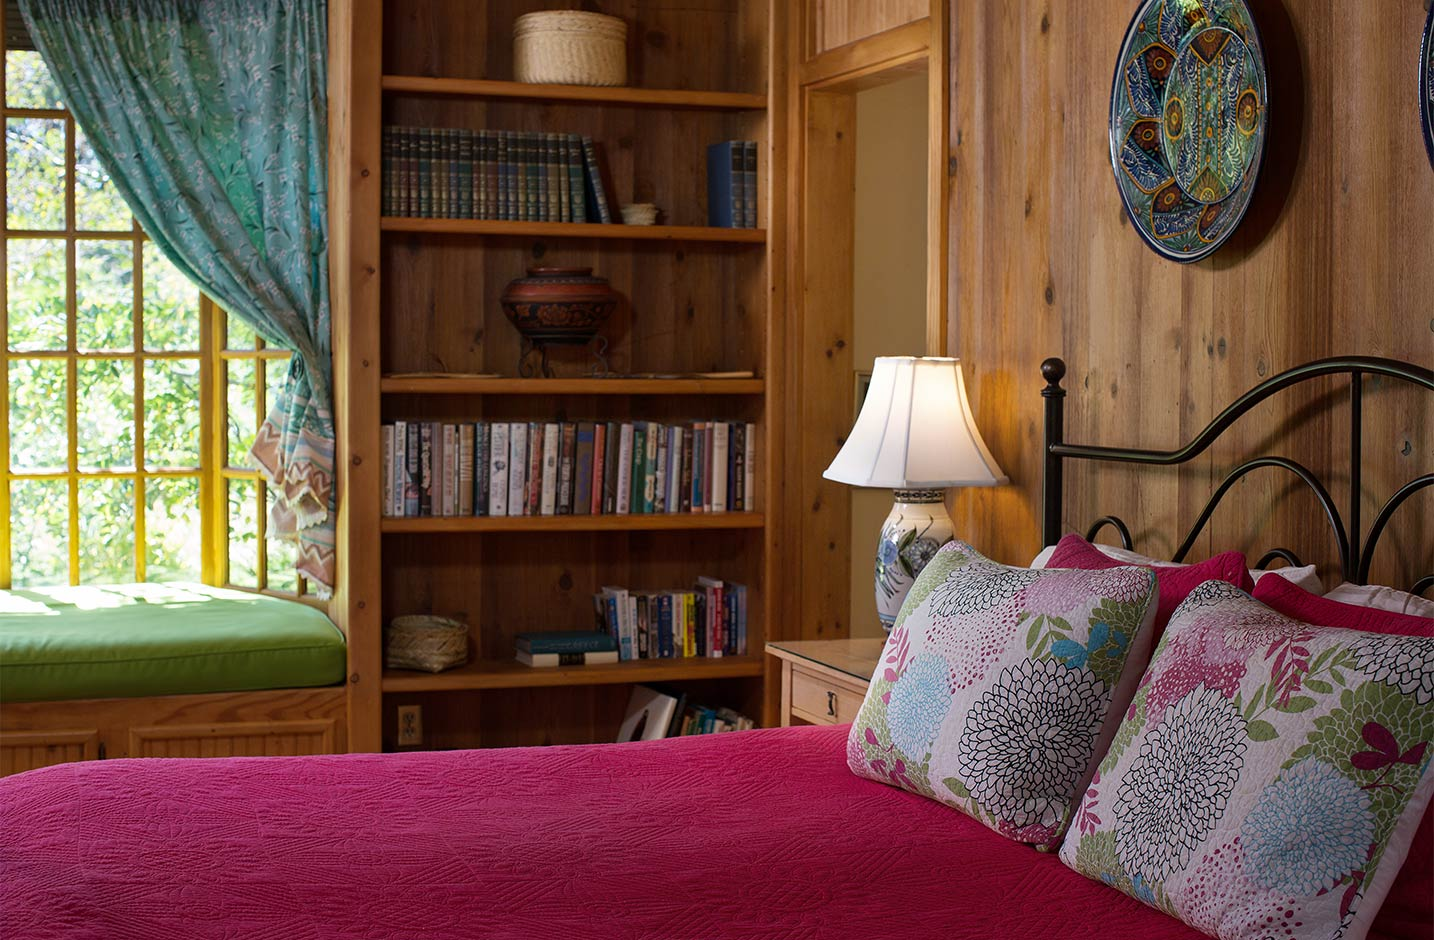 King bed with table lamp and bookshelf